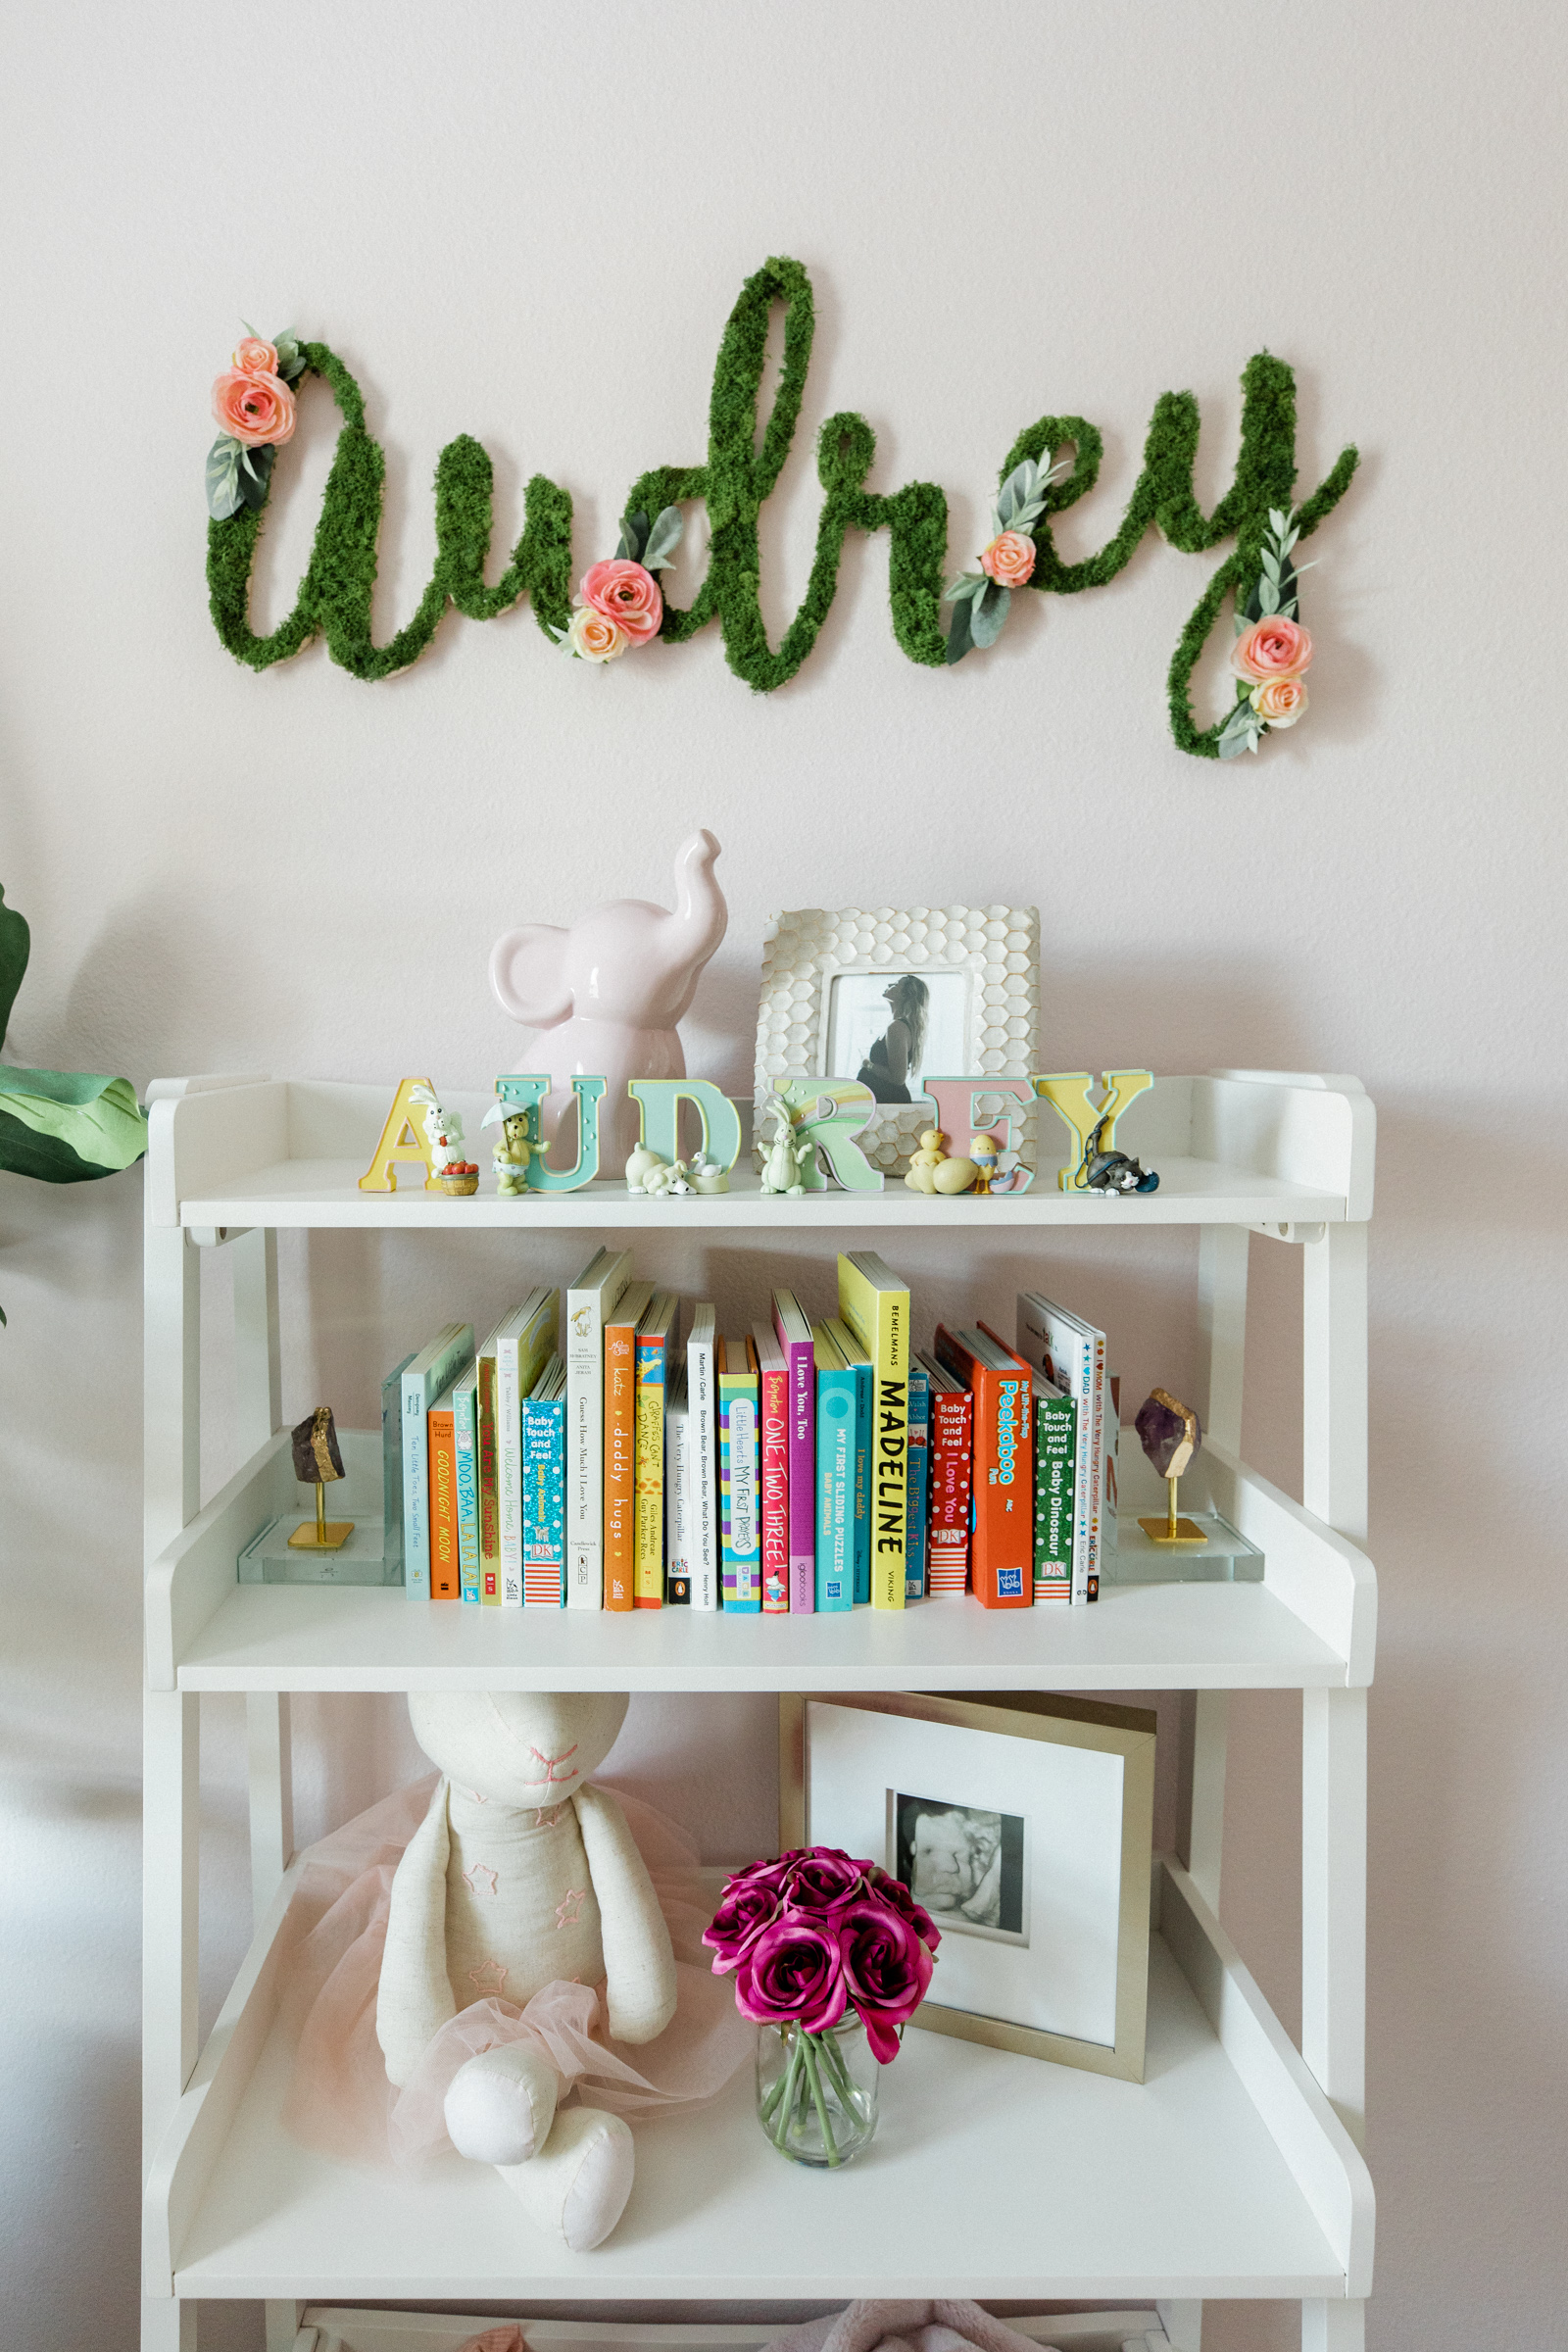 Houston lifestyle blogger Elly Brown shares bookcase decor ideas for baby girl nursery decor